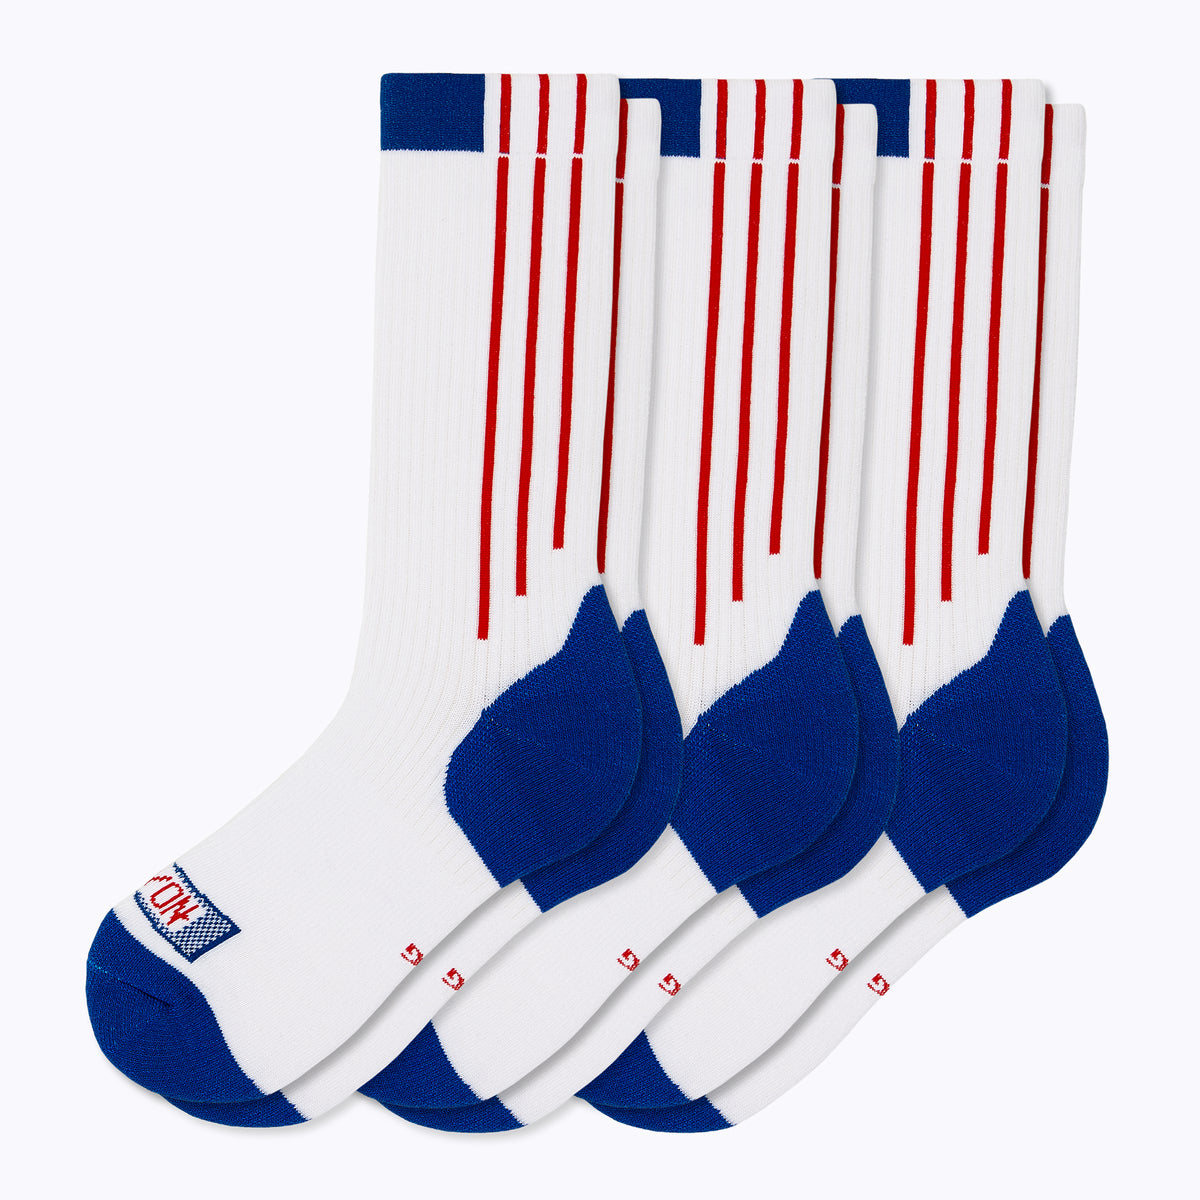 Americana 3 Pack Men's Crew Socks - RWB by Canyon Socks